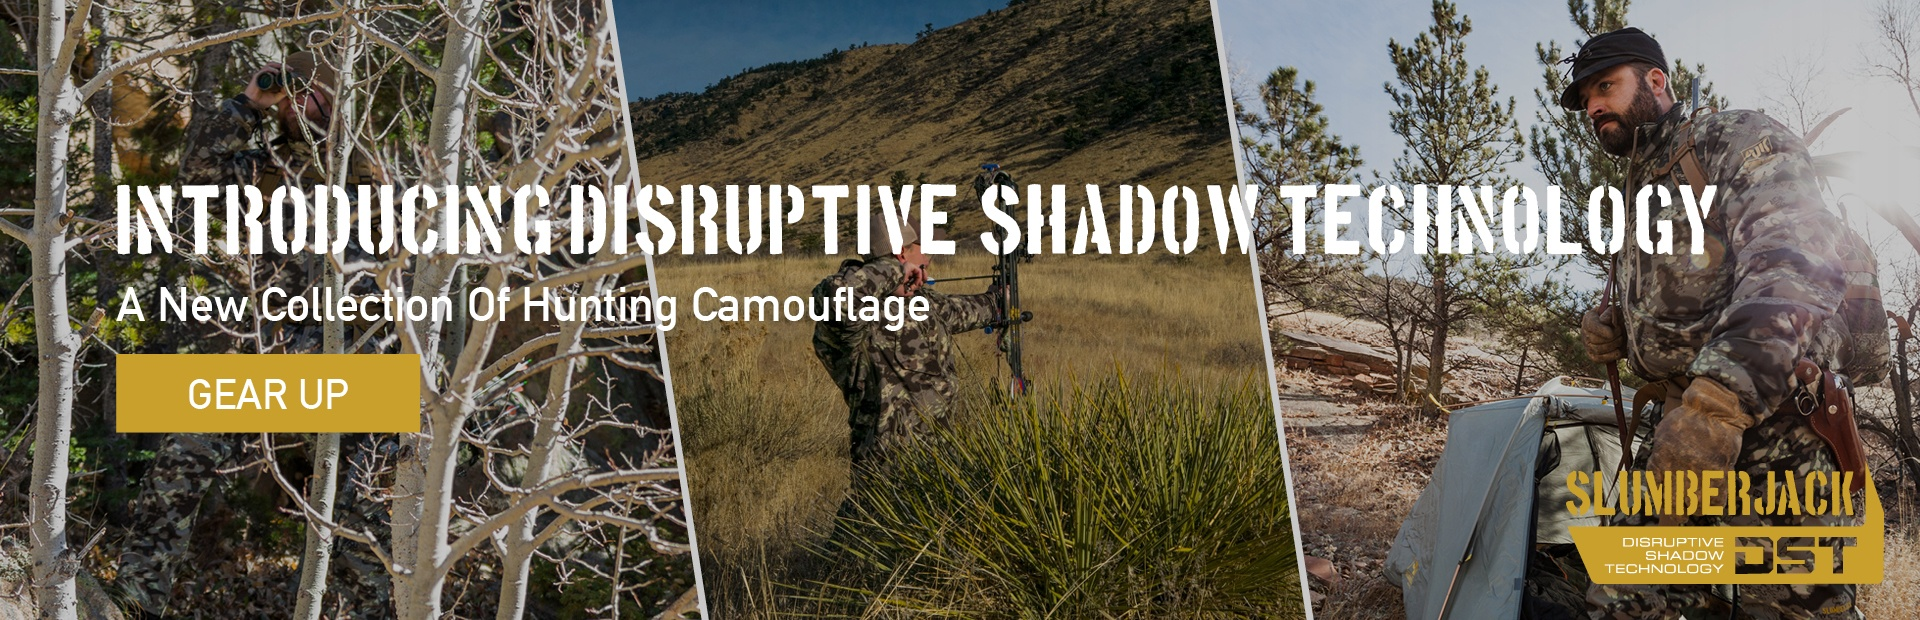 Introducing Disruptive Shadow Technology